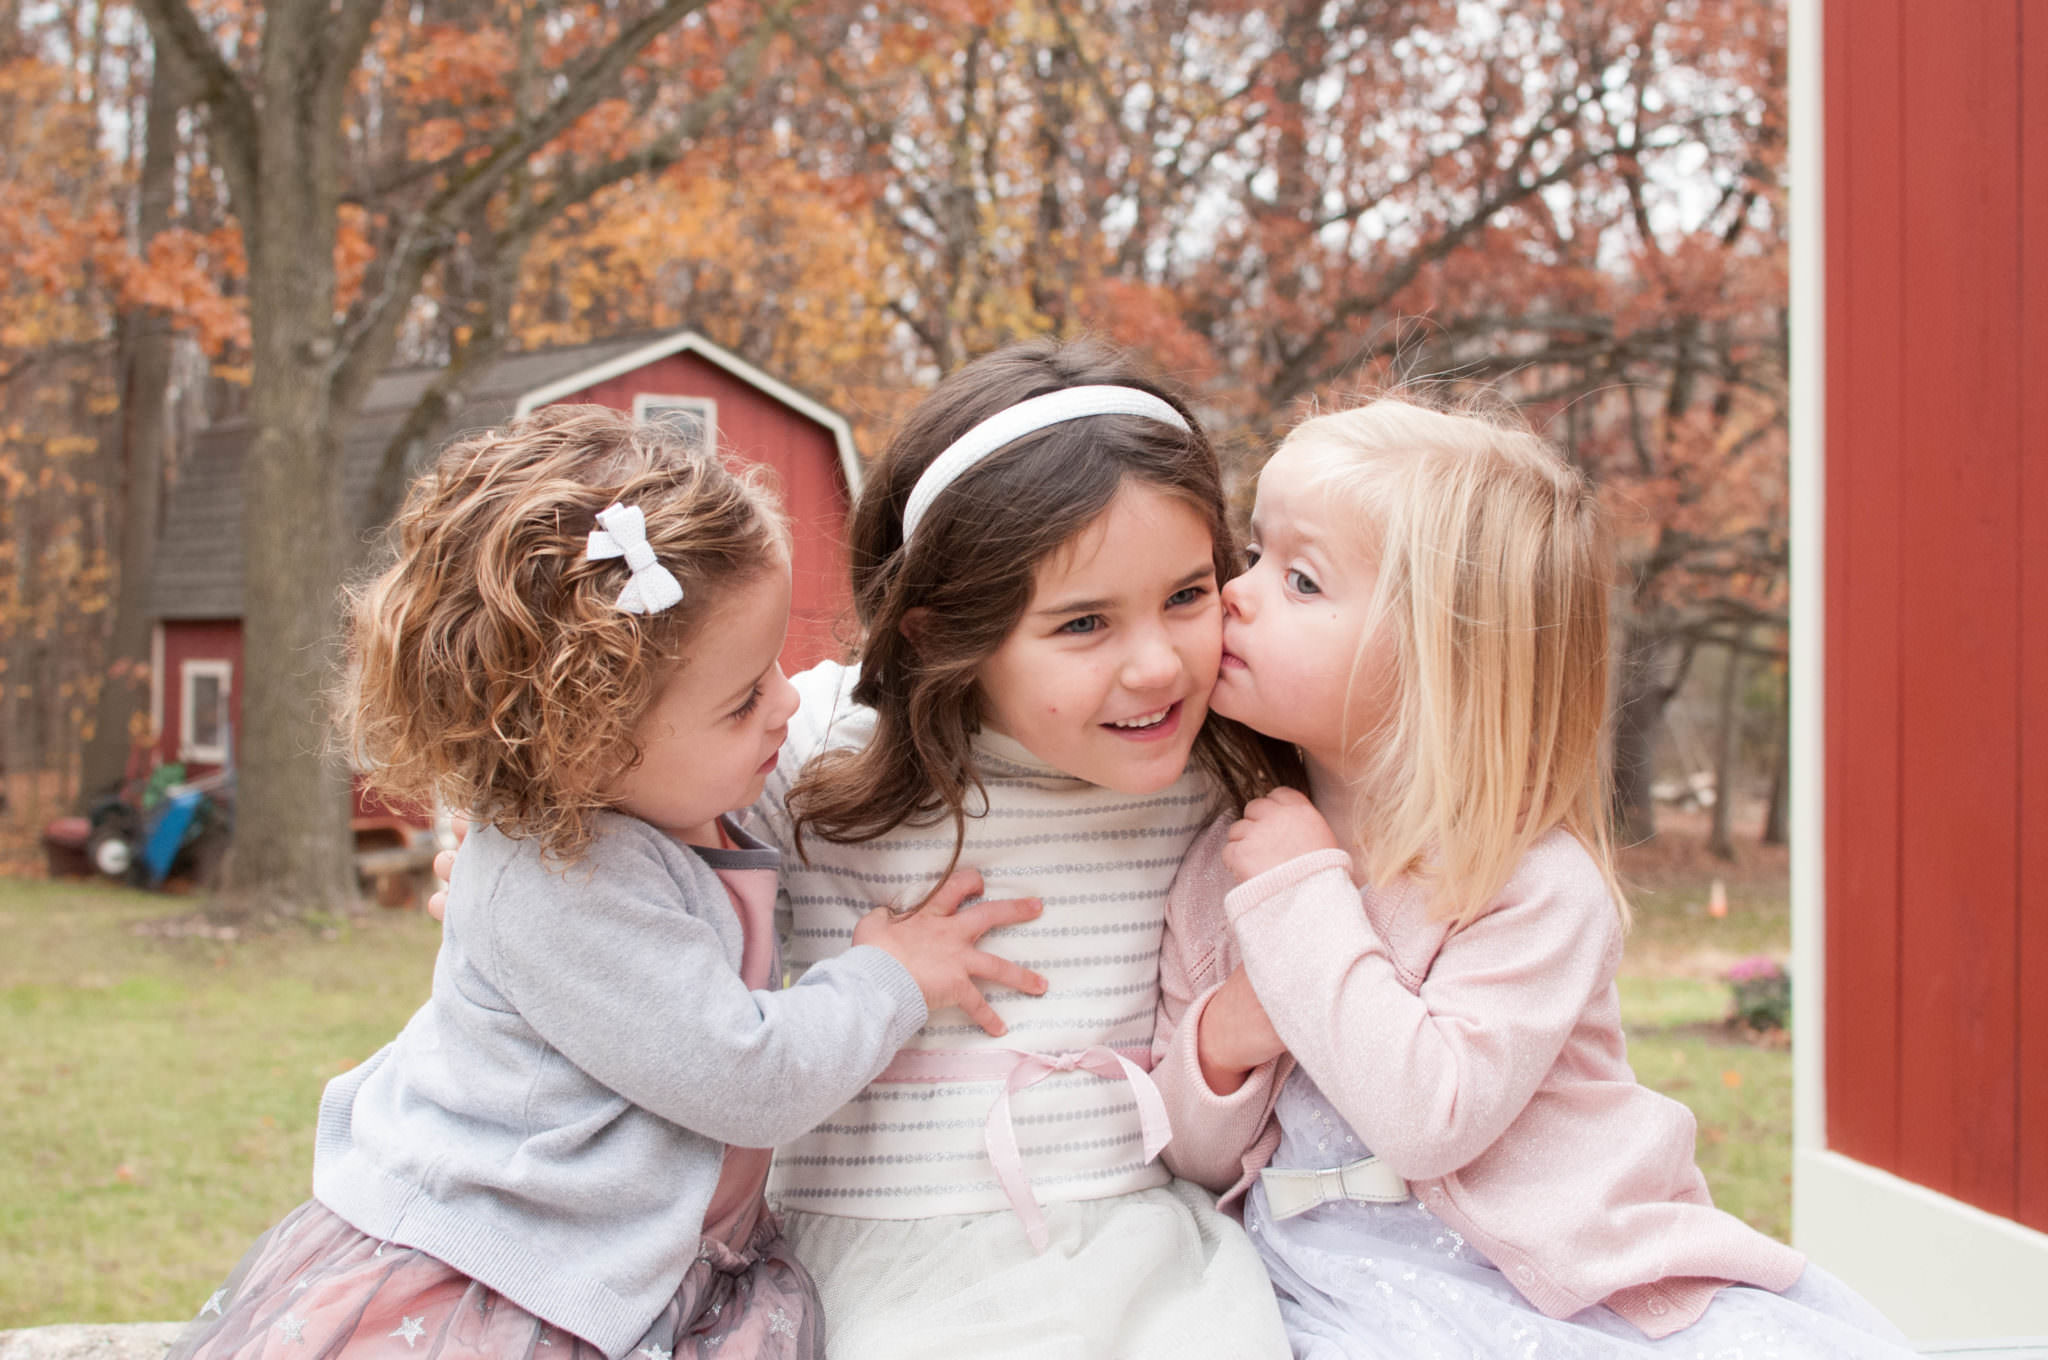 Three sisters hugging at the park, South Lyon Child Photographer, Metro Detroit Child Photography